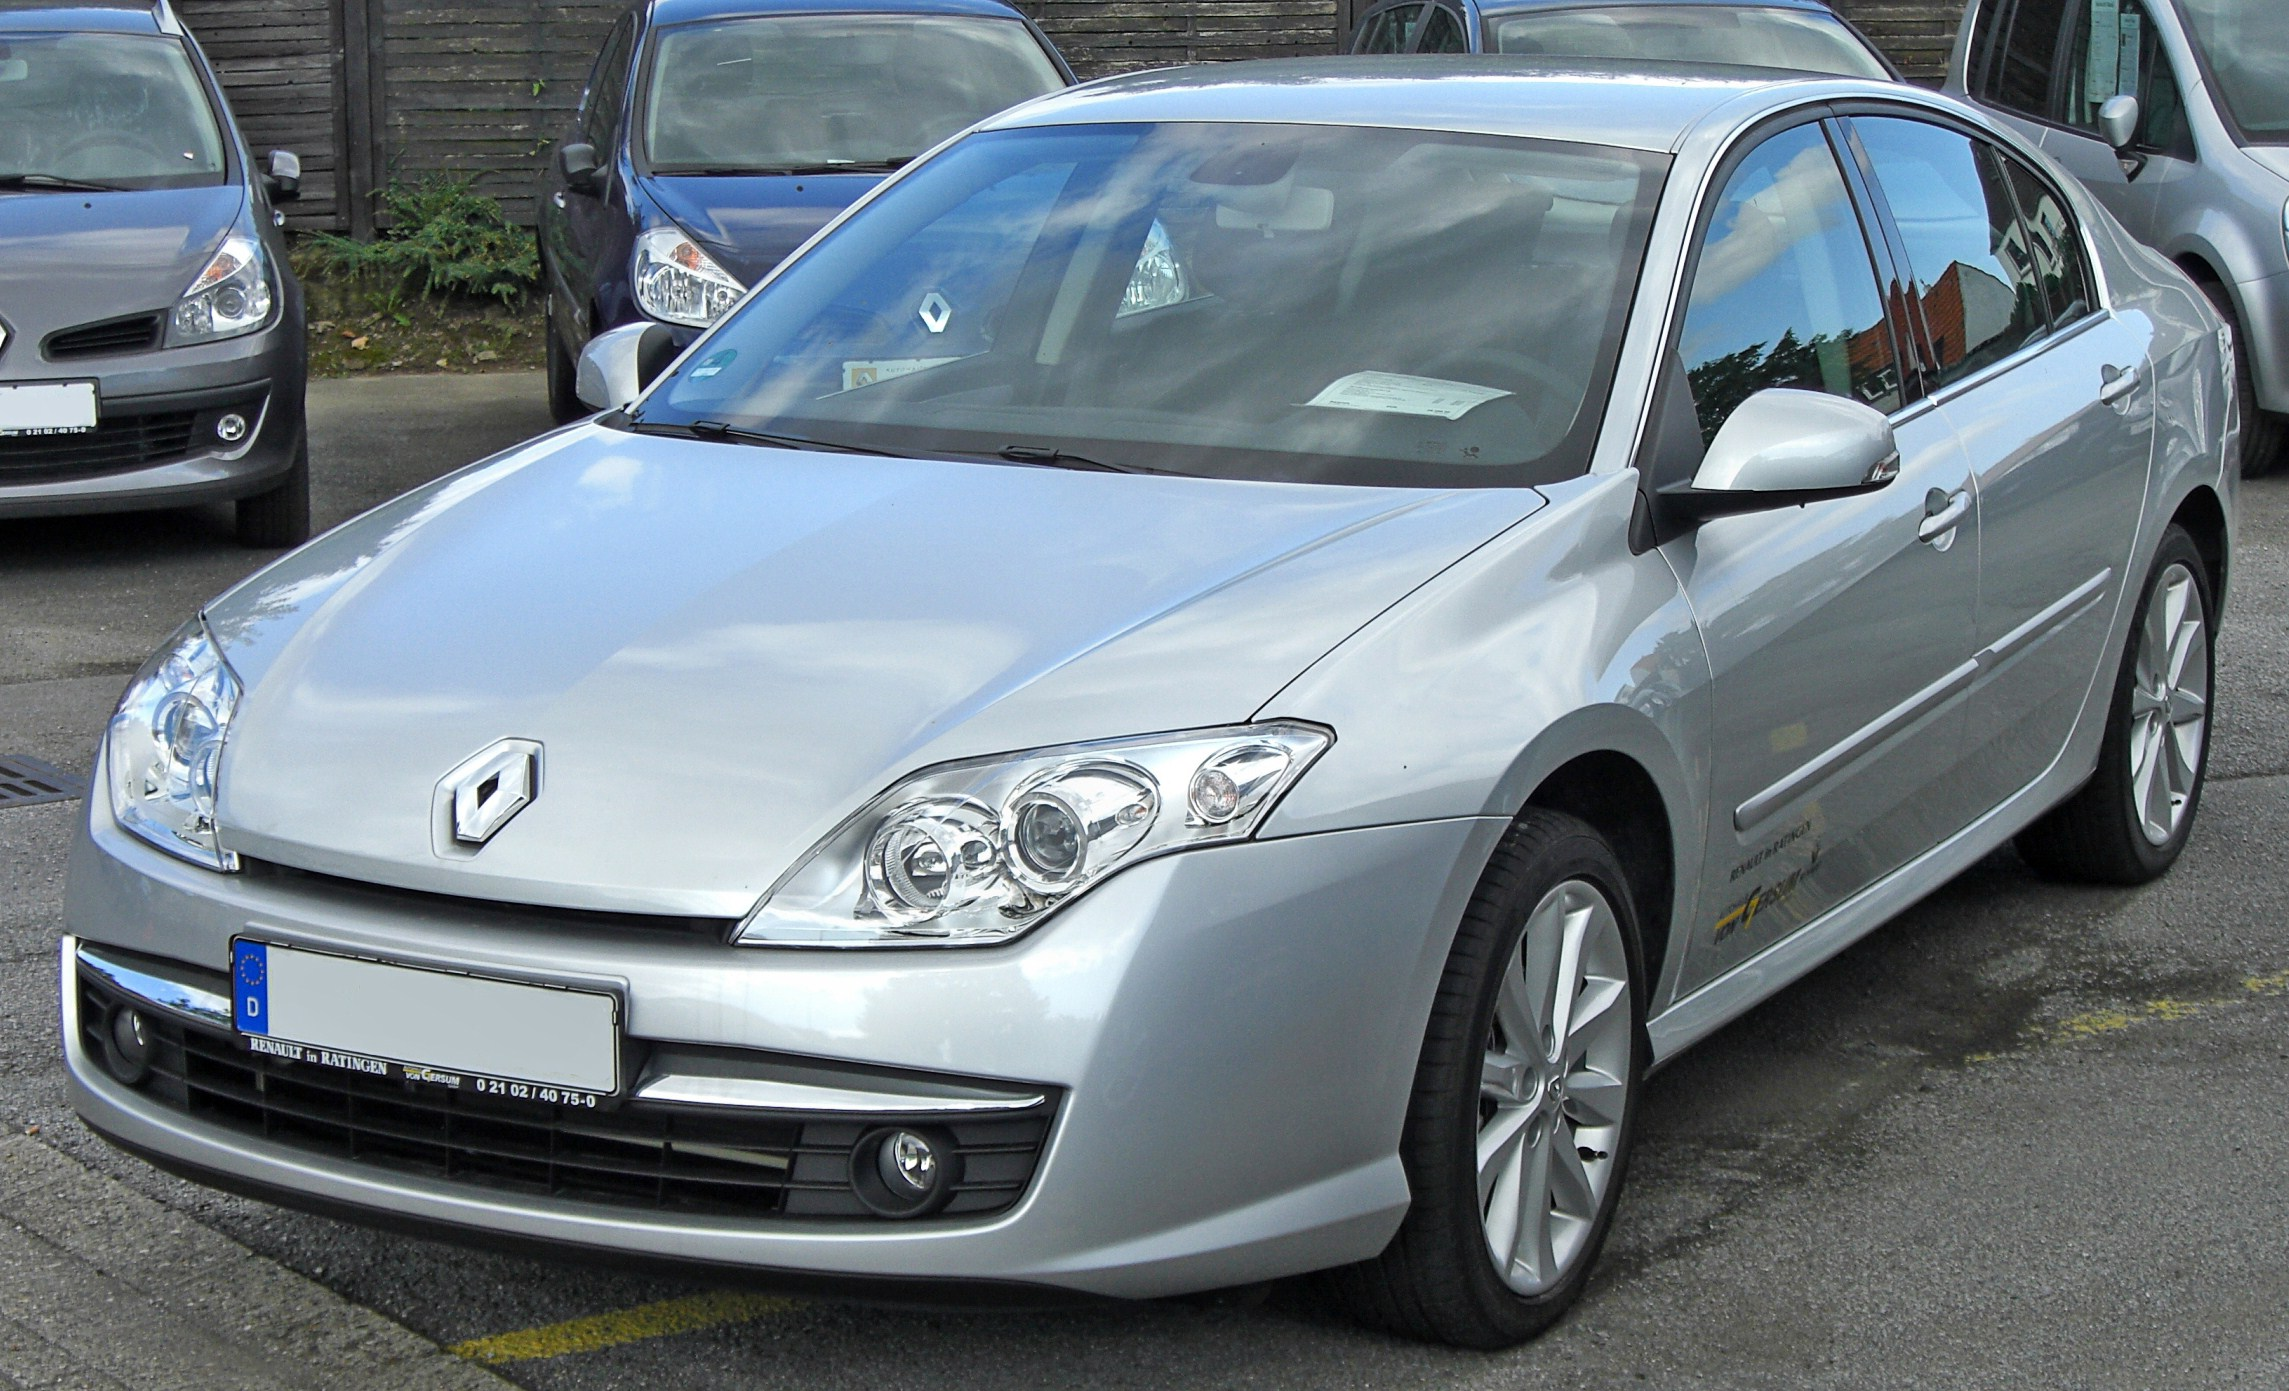 2010 renault laguna iii hatchback pictures information and specs auto. Black Bedroom Furniture Sets. Home Design Ideas